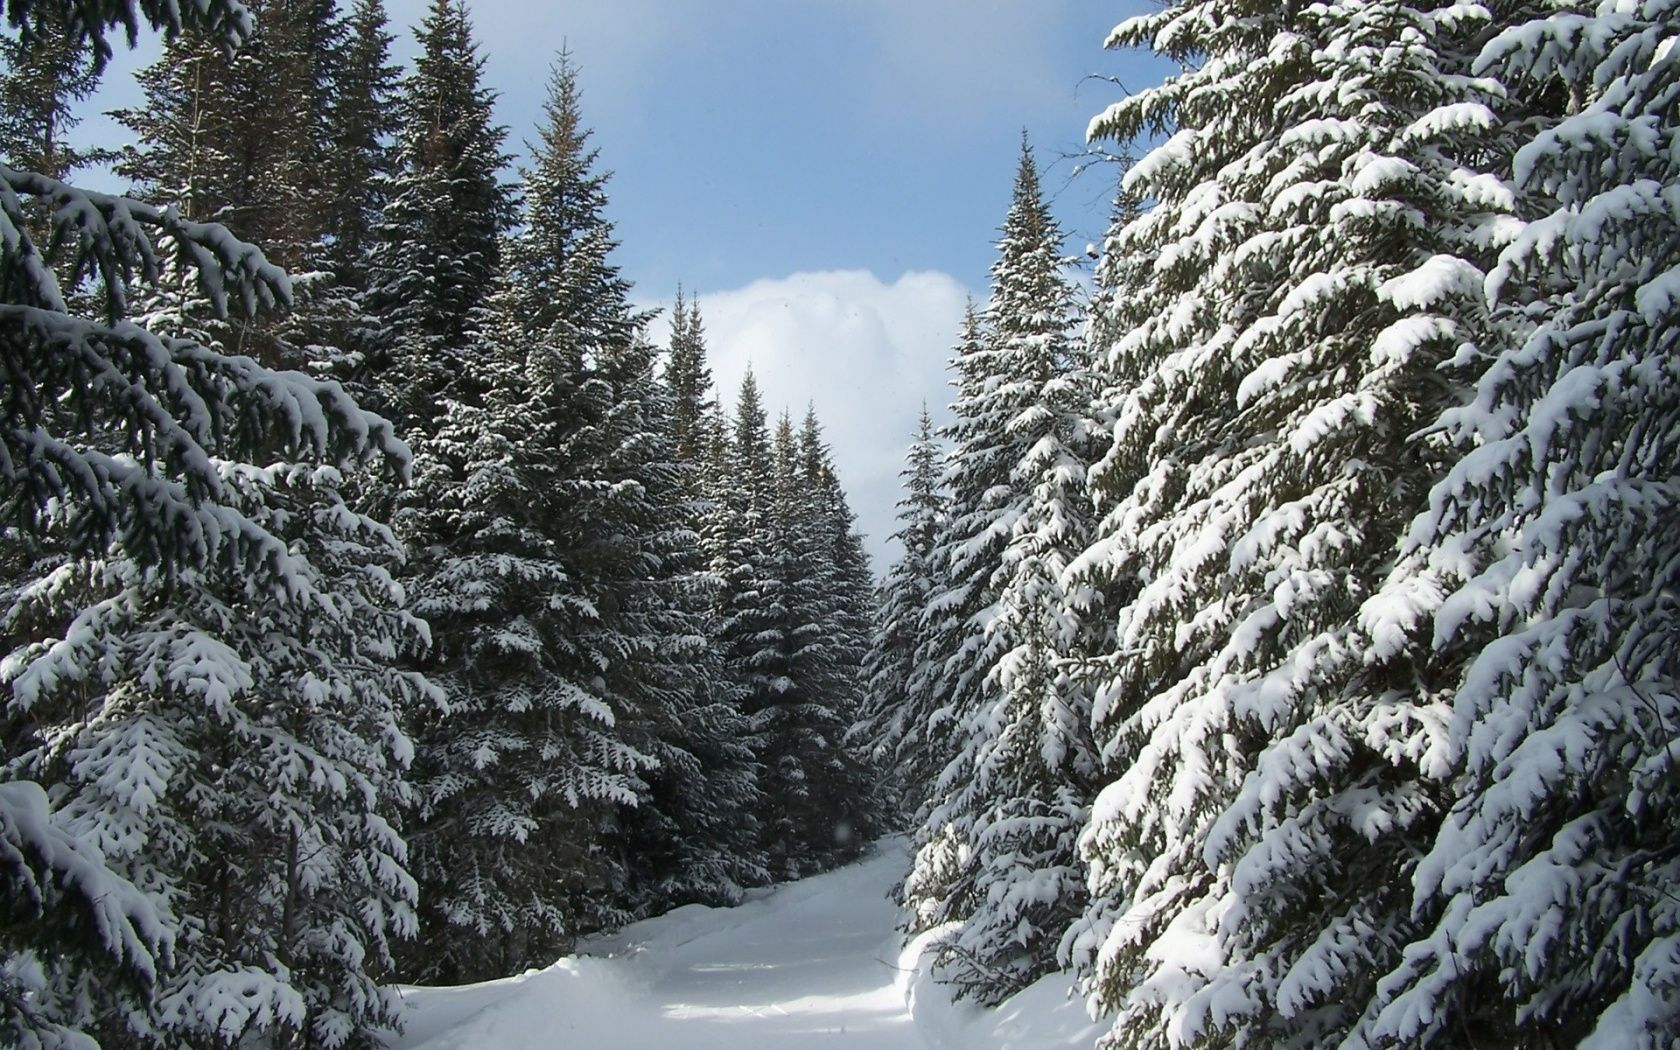 Temperate Coniferous Forests (With images)   Winter forest, Winter ...